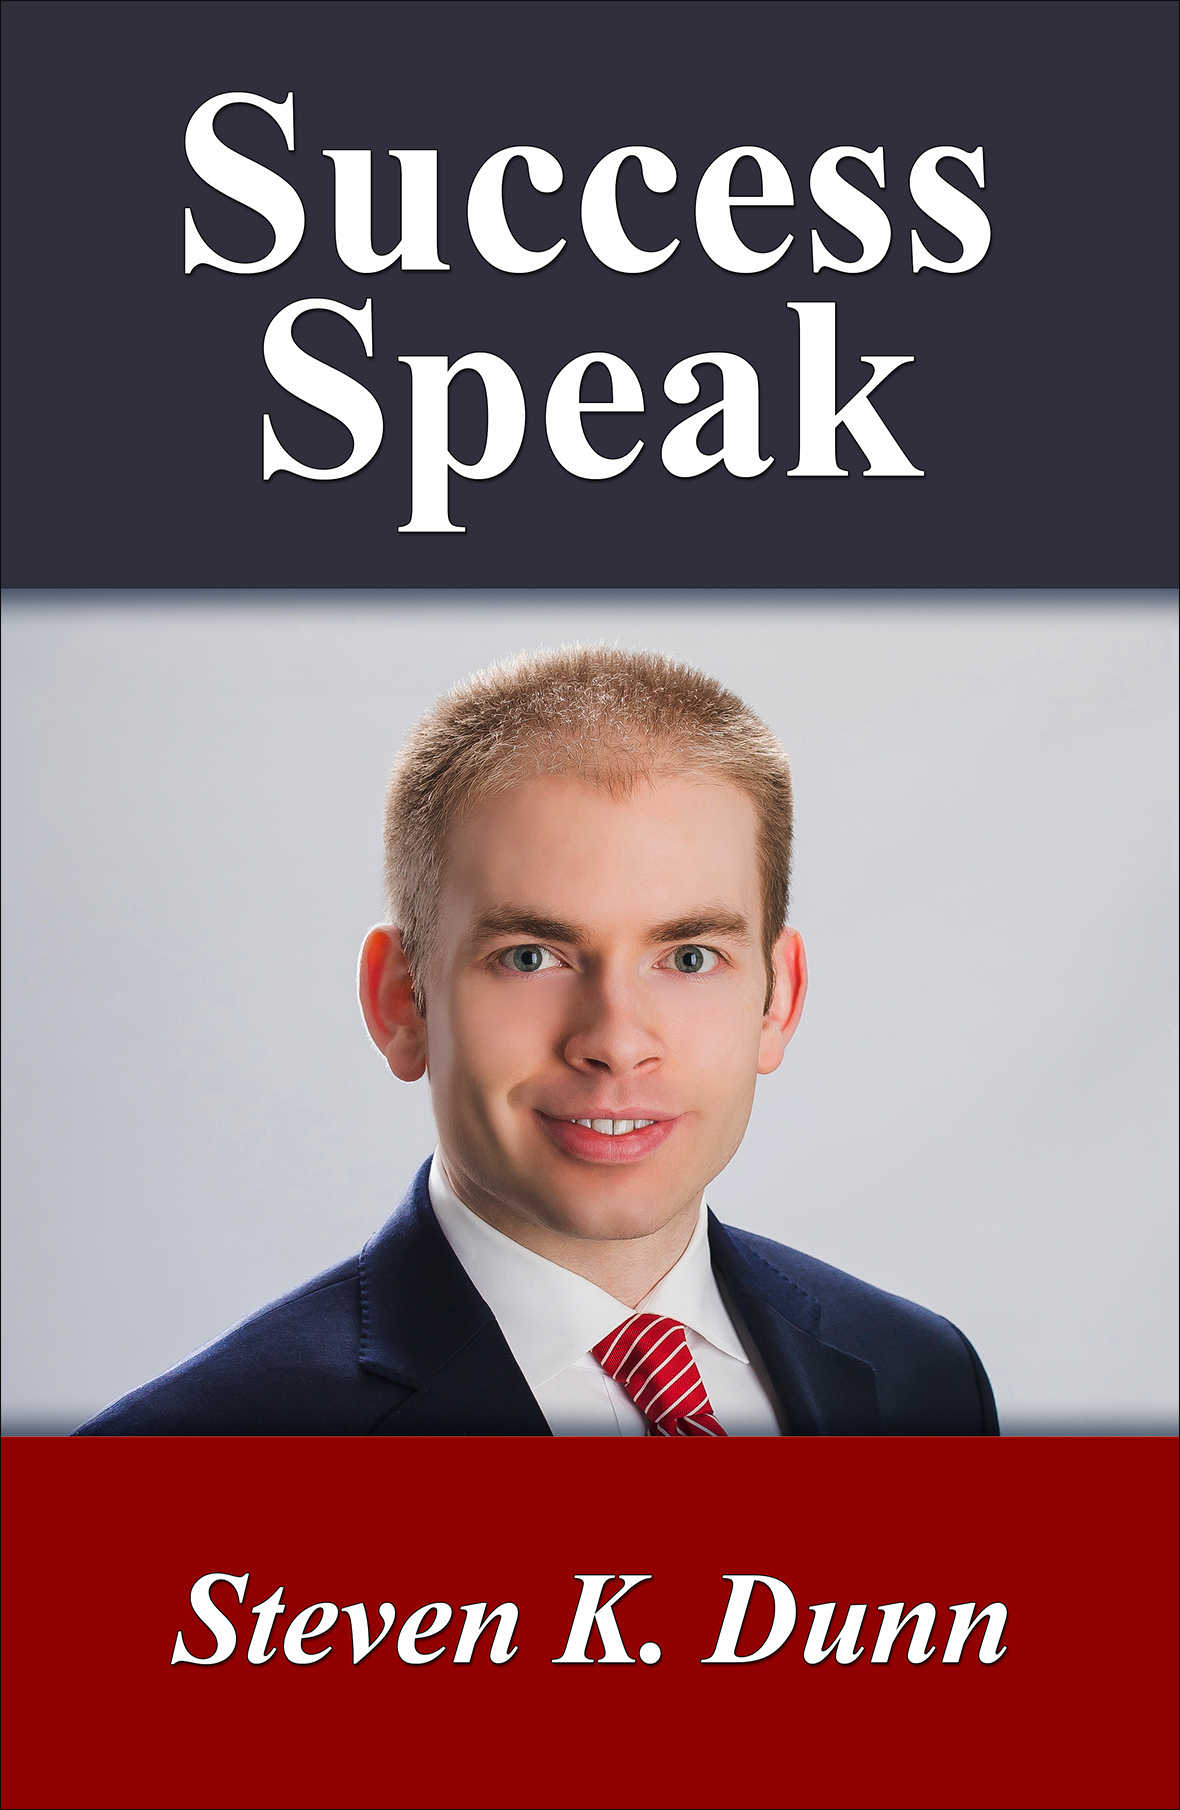 Success Speak Cover V14 for Main Book for Web Insertion